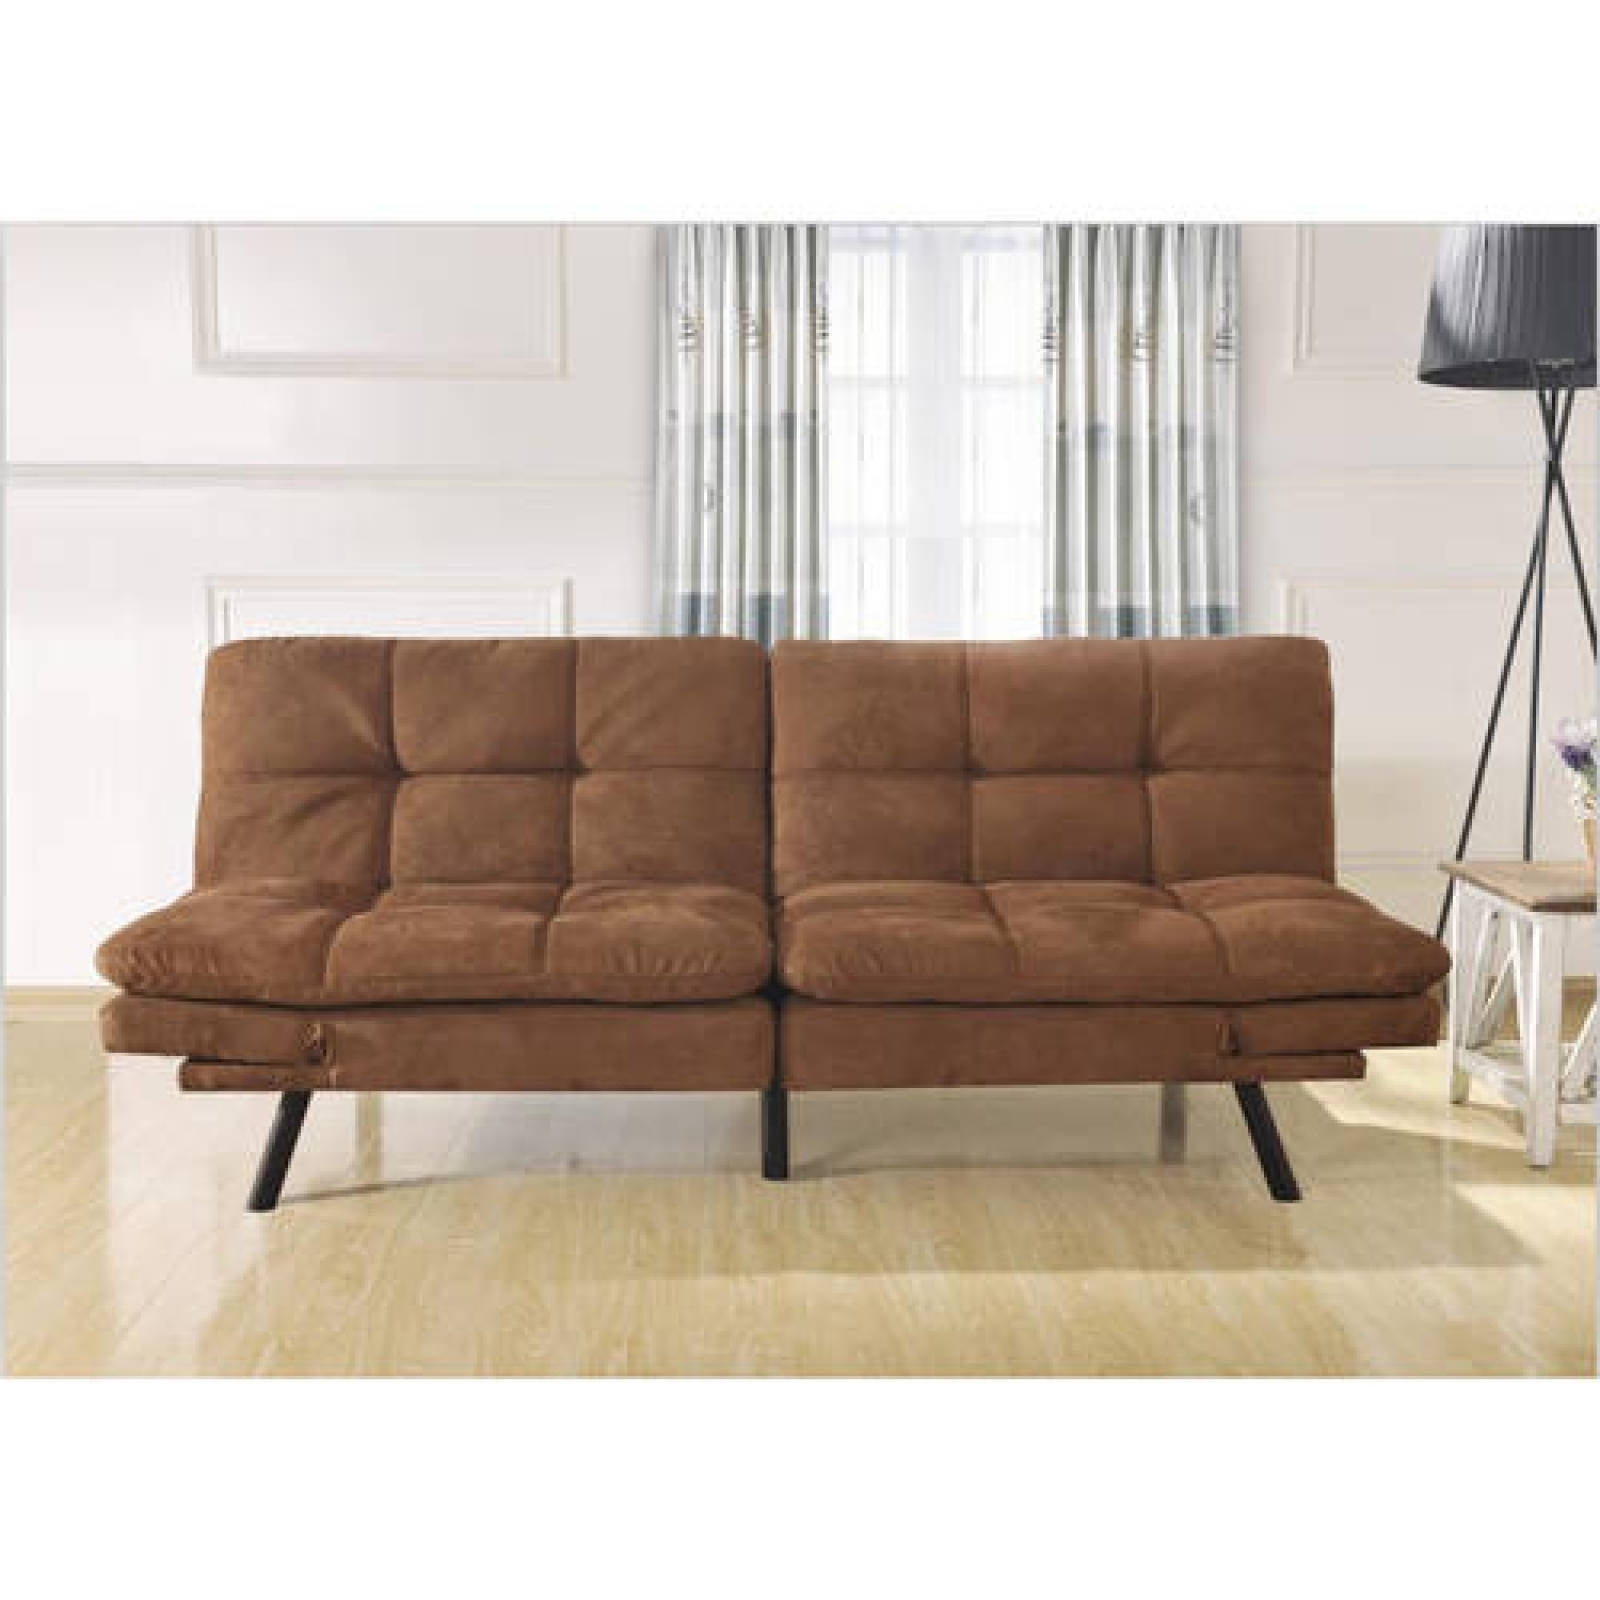 Most Recently Released Convertible Sofa Bed Couch Futon Chaises Chair Seat Memory Foam Throughout Futon Chaises (View 11 of 15)